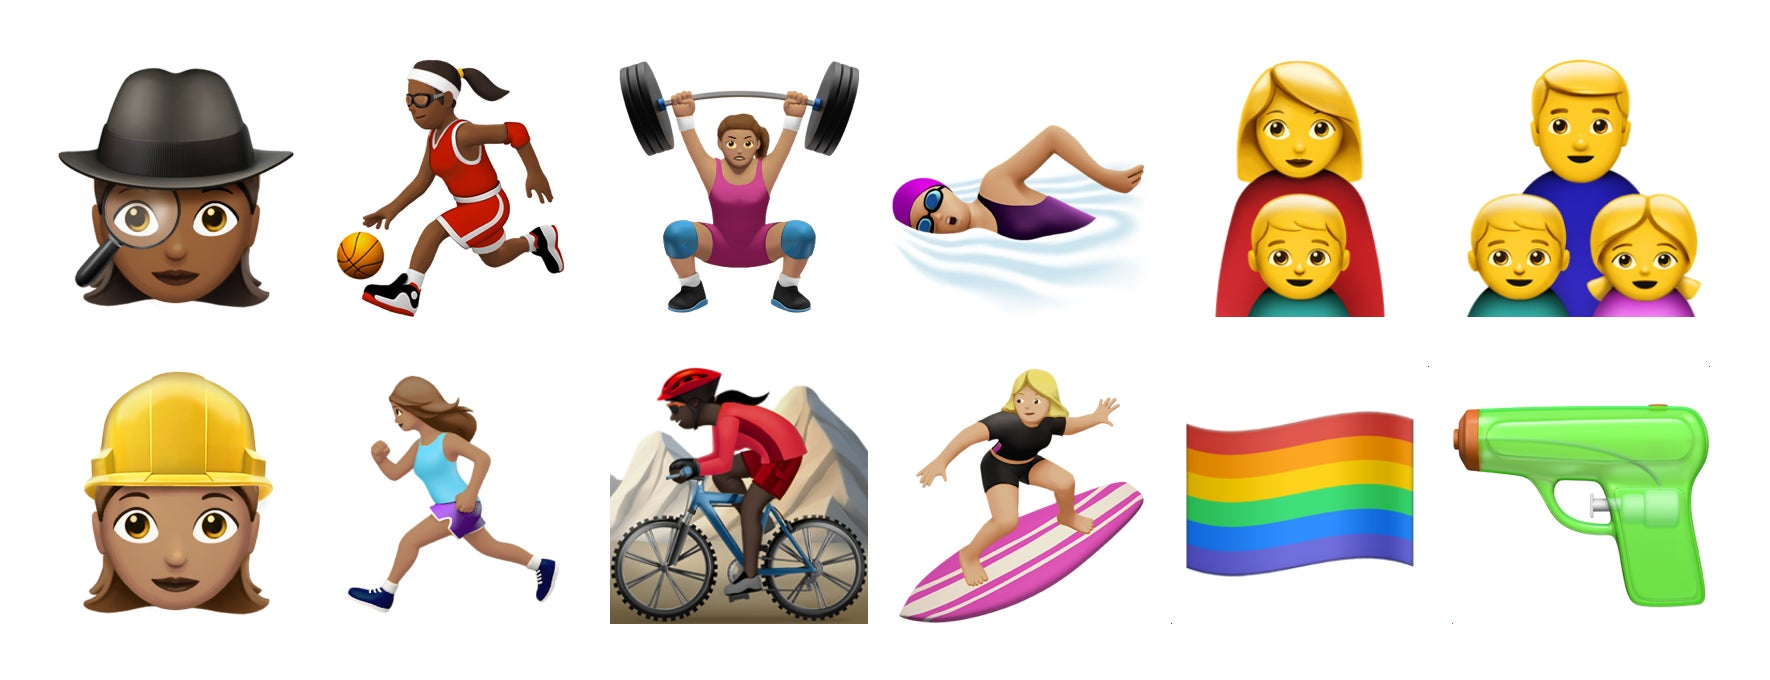 c9e4964256952 New emoji add gender parity and a more realistic drawing style in iOS 10  and macOS Sierra